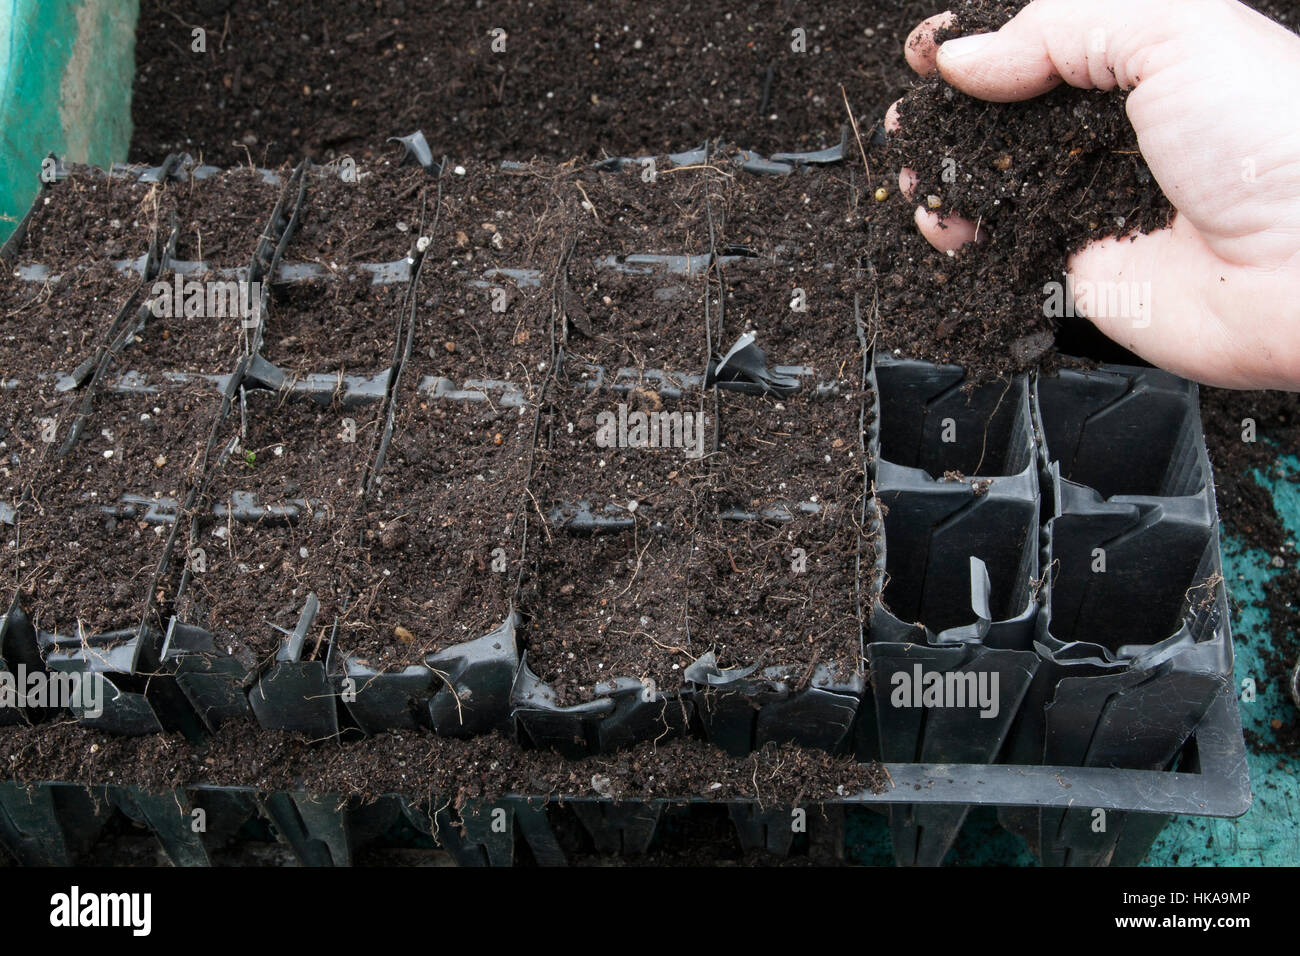 Sowing Sweet Pea - Filling Root Trainer modules with compost - Stock Image